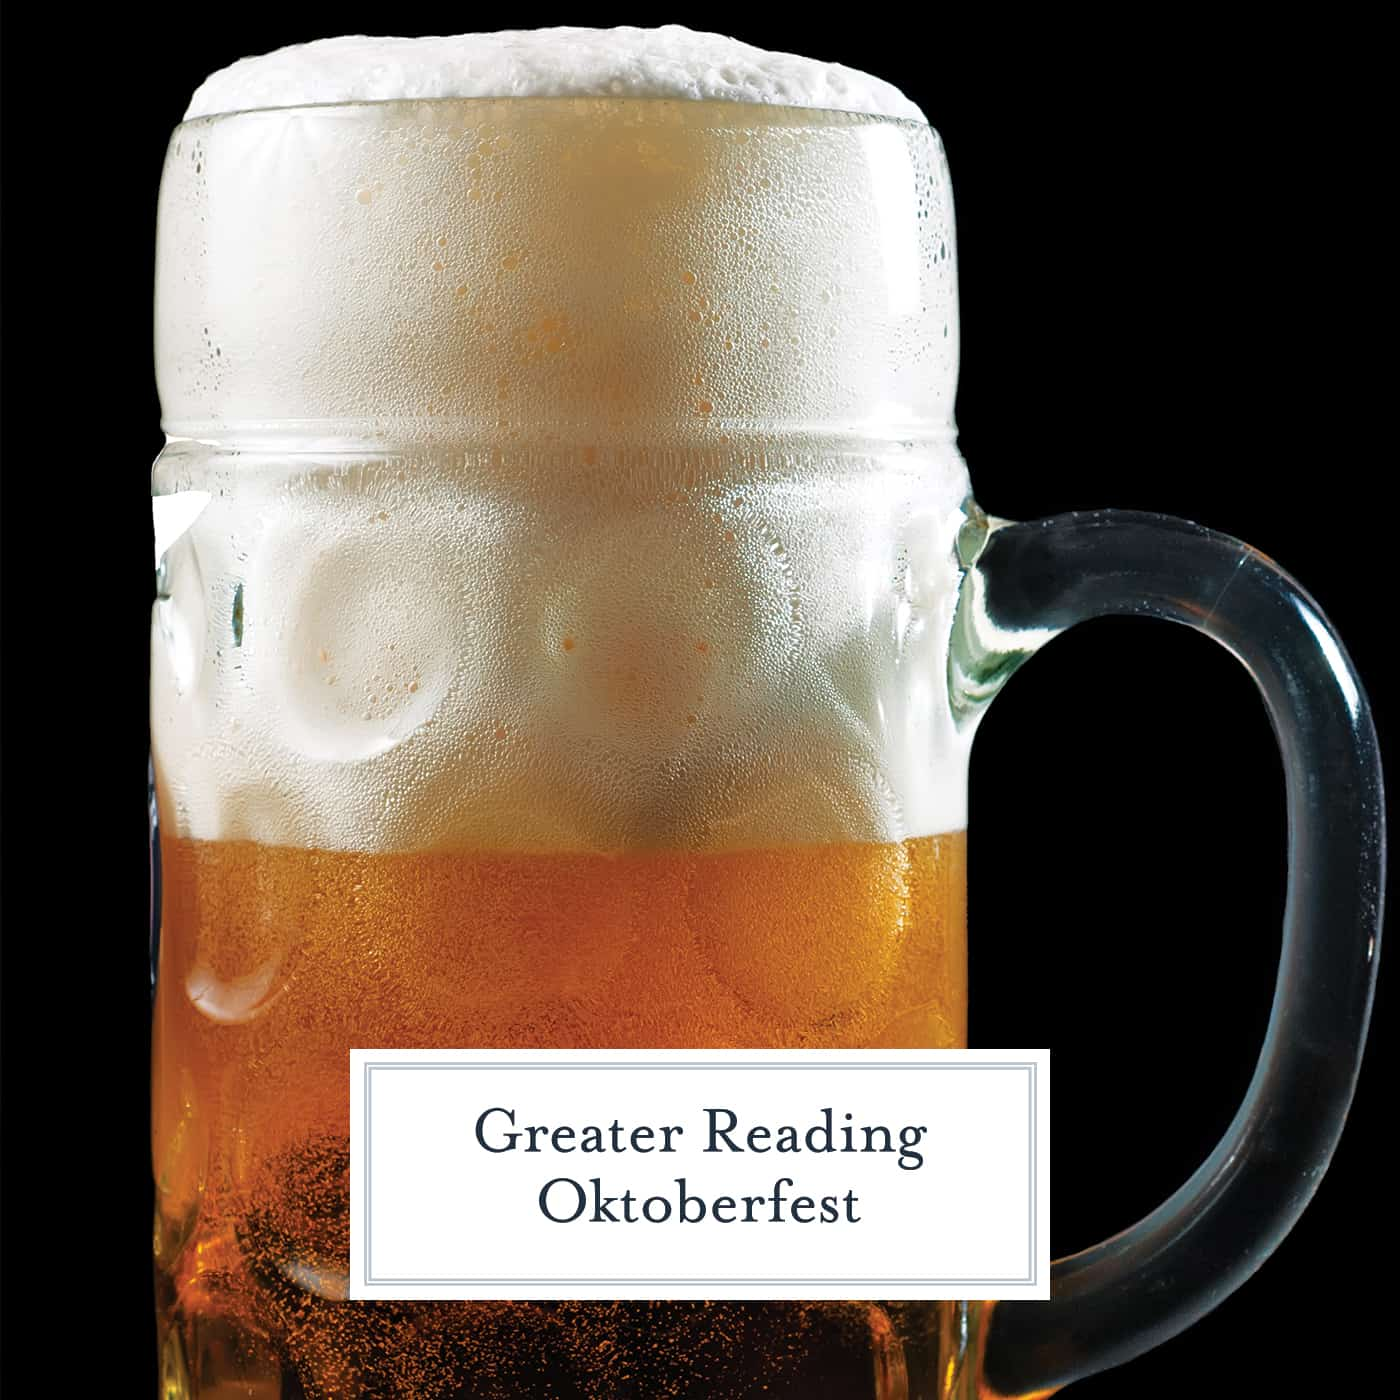 Greater Reading Pennsylvania has the 4th best Oktoberfest in the whole world! Who knew, right in our backyard. Plan your visit here! #oktoberfest www.savoryexperiments.com